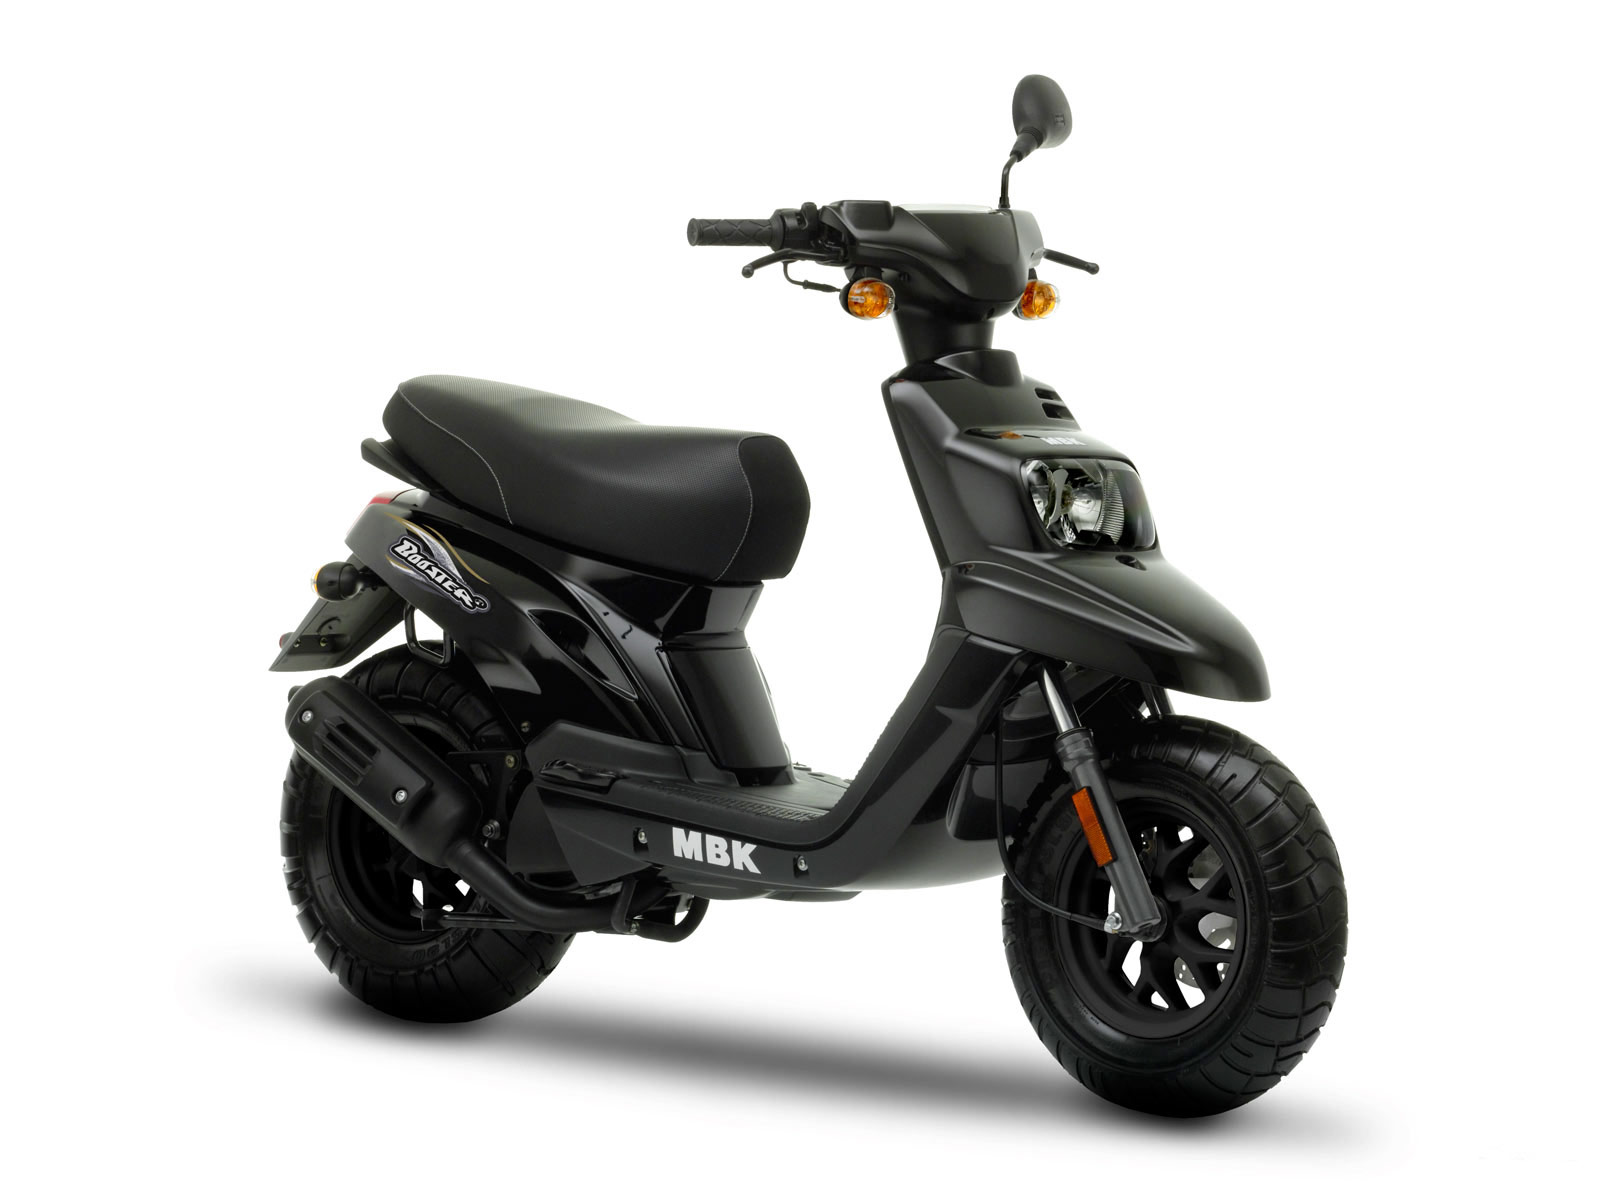 2010 Mbk Booster Scooter Pictures